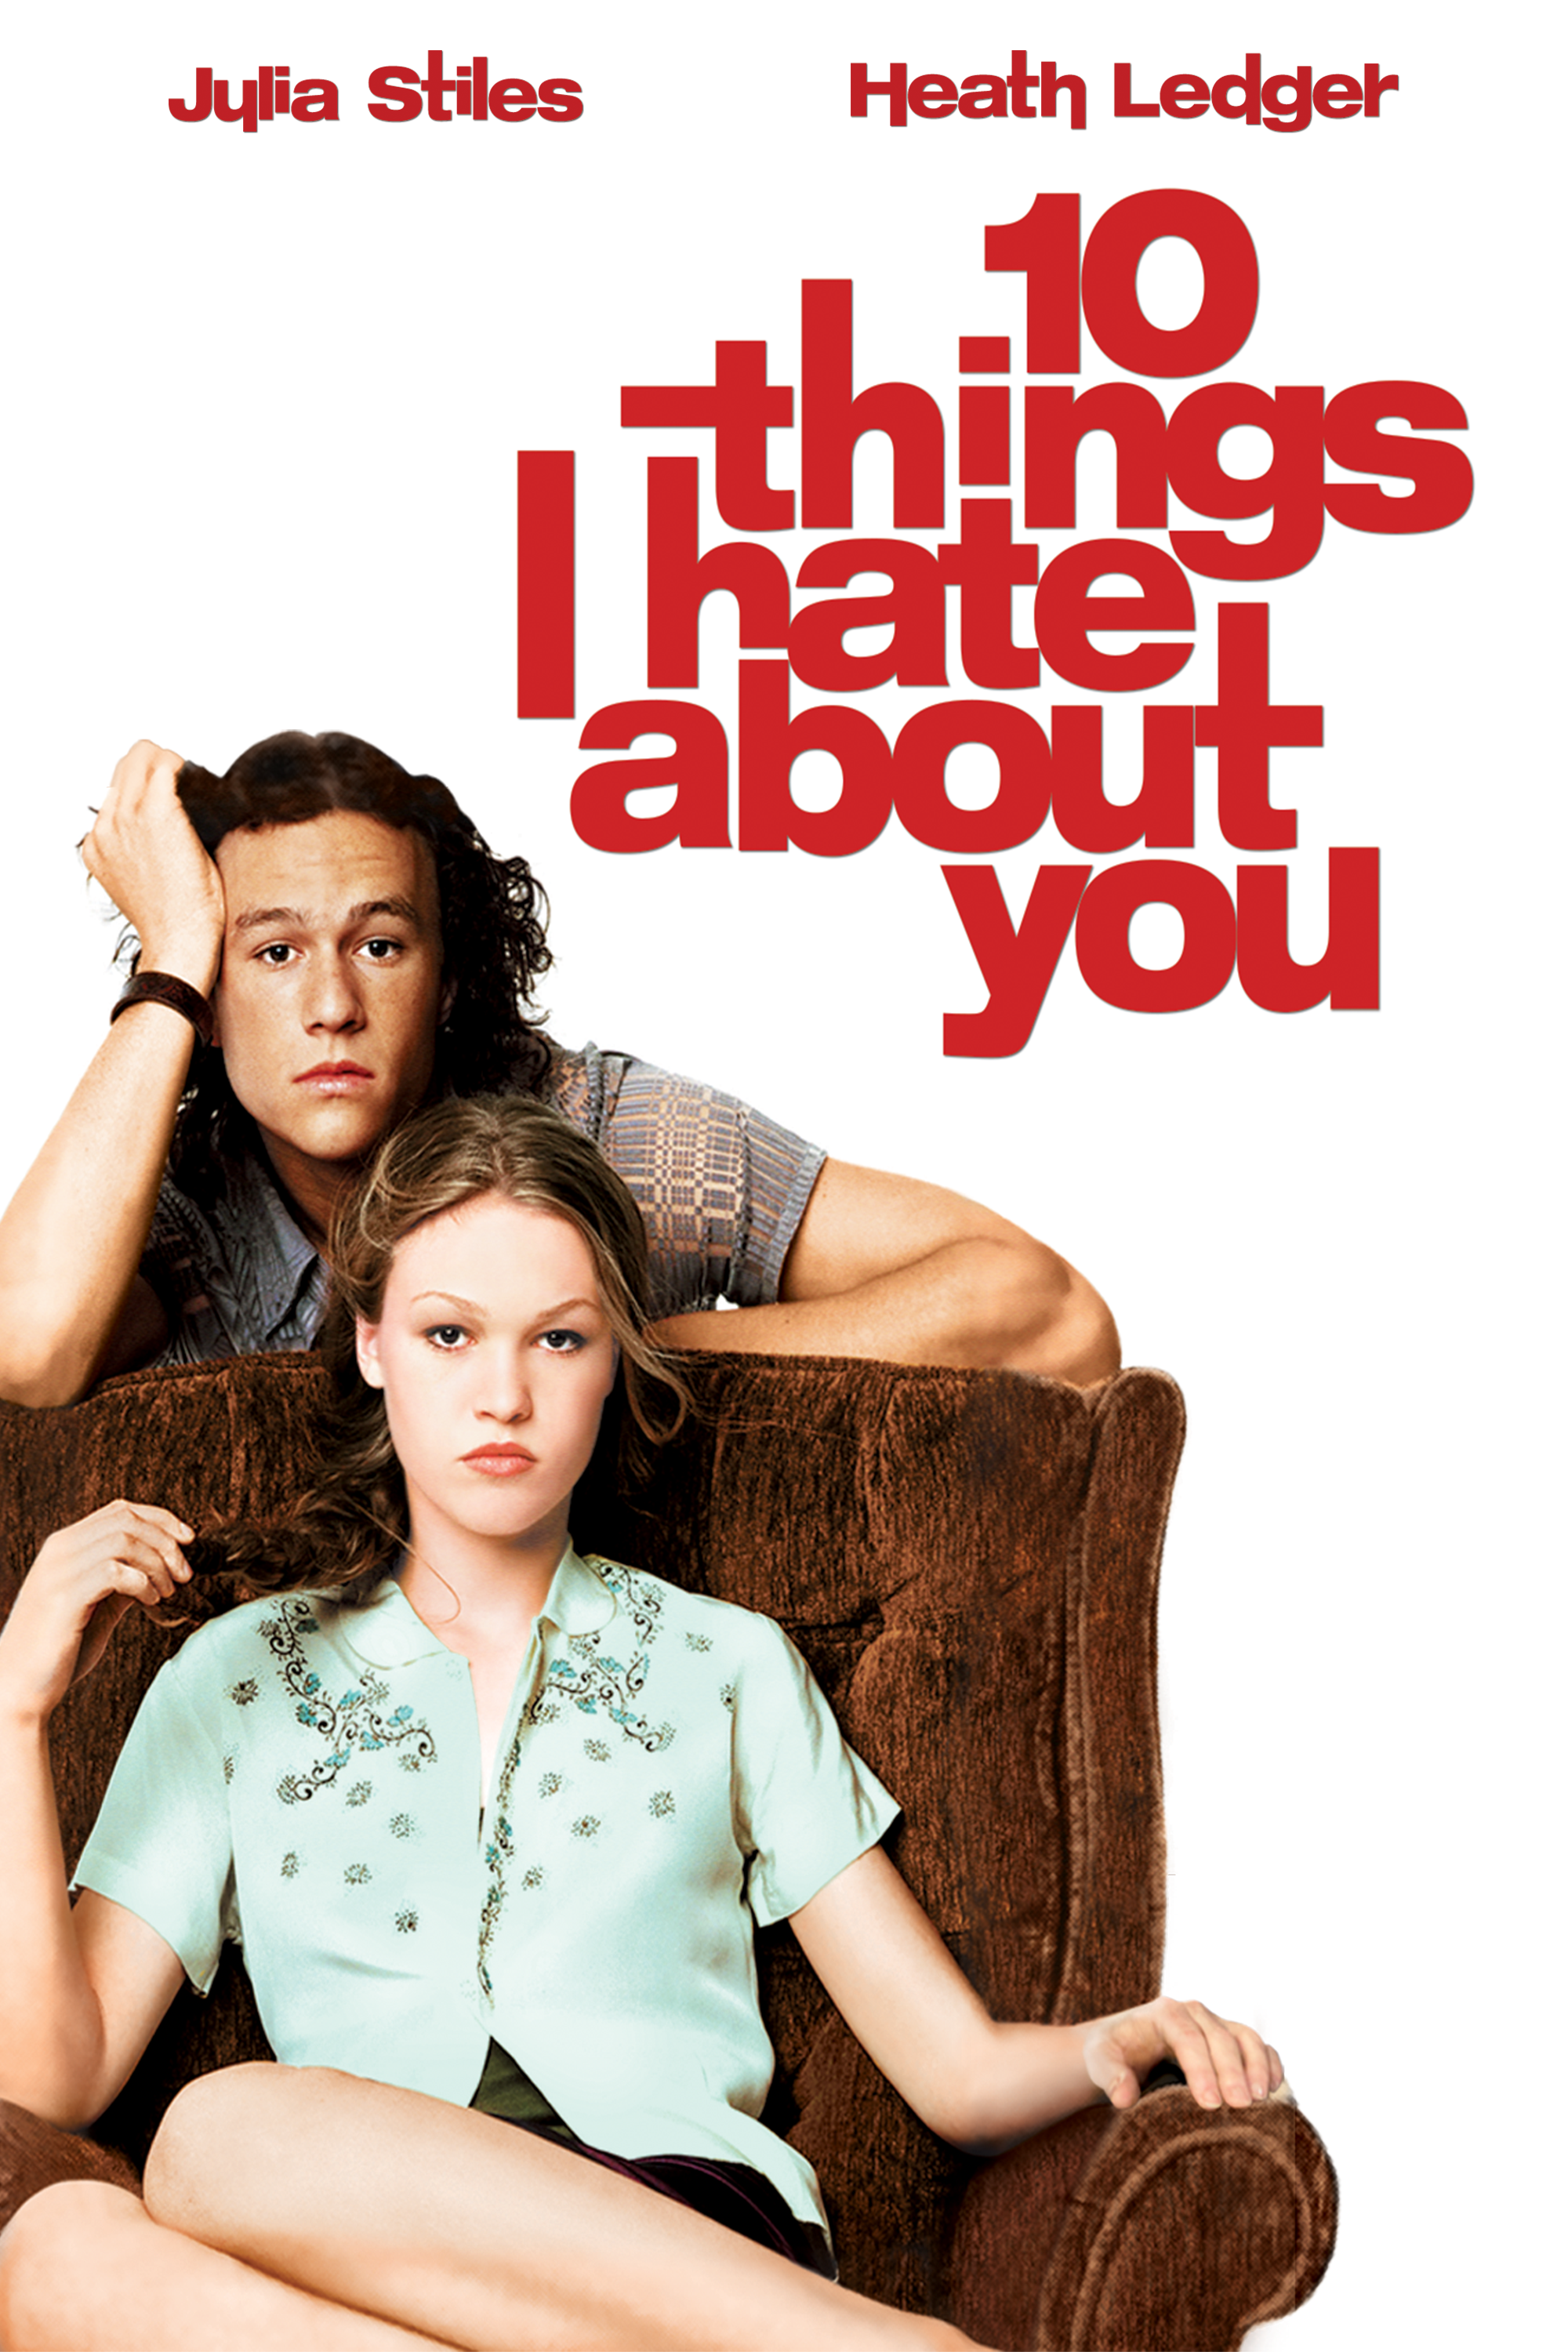 Watch 10 Things I Hate About You | Disney+